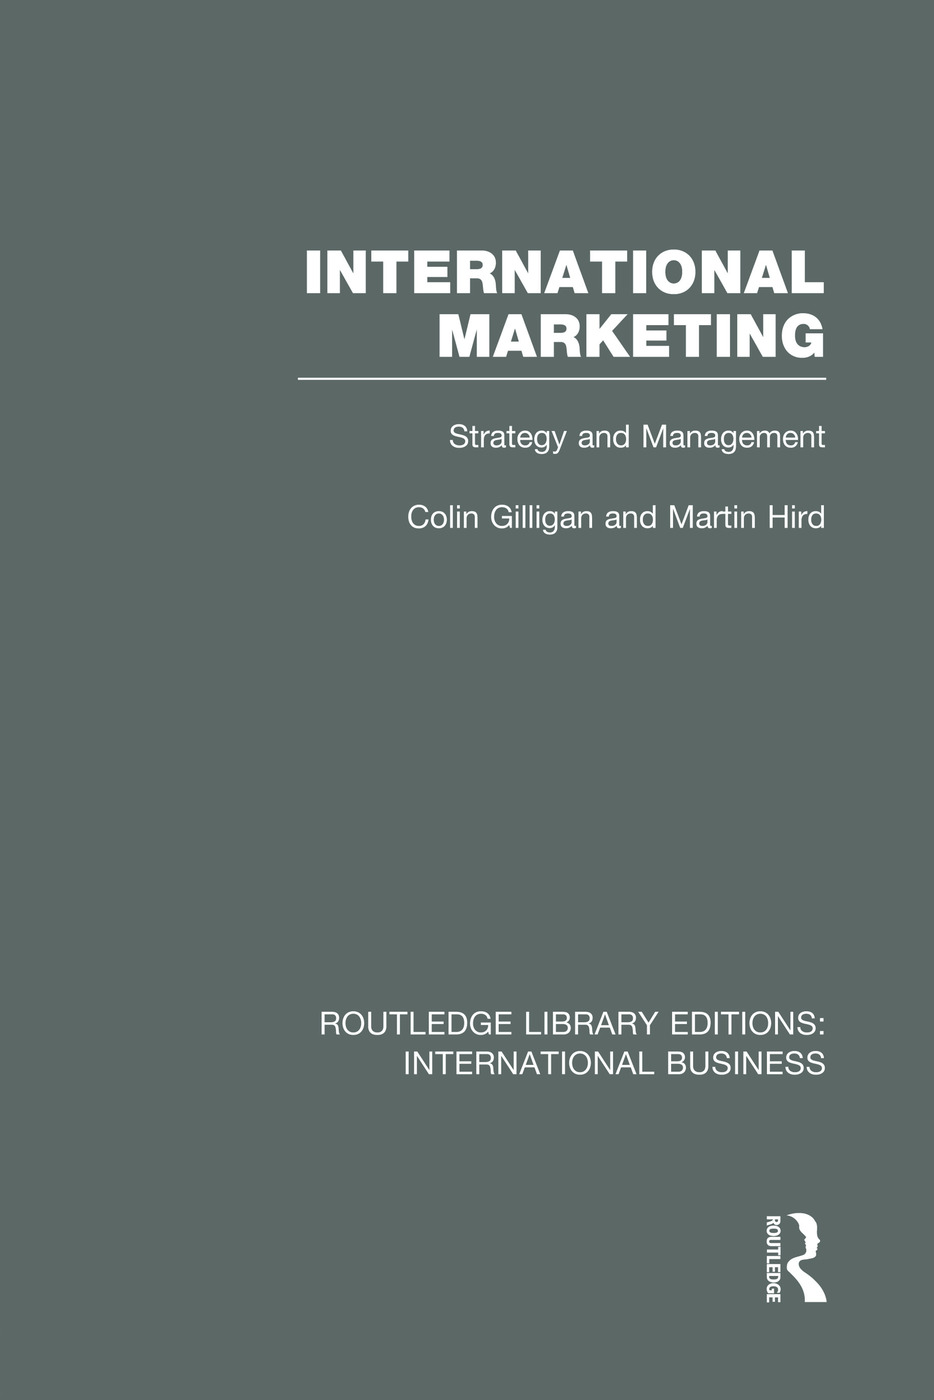 International Marketing (RLE International Business): Strategy and Management book cover